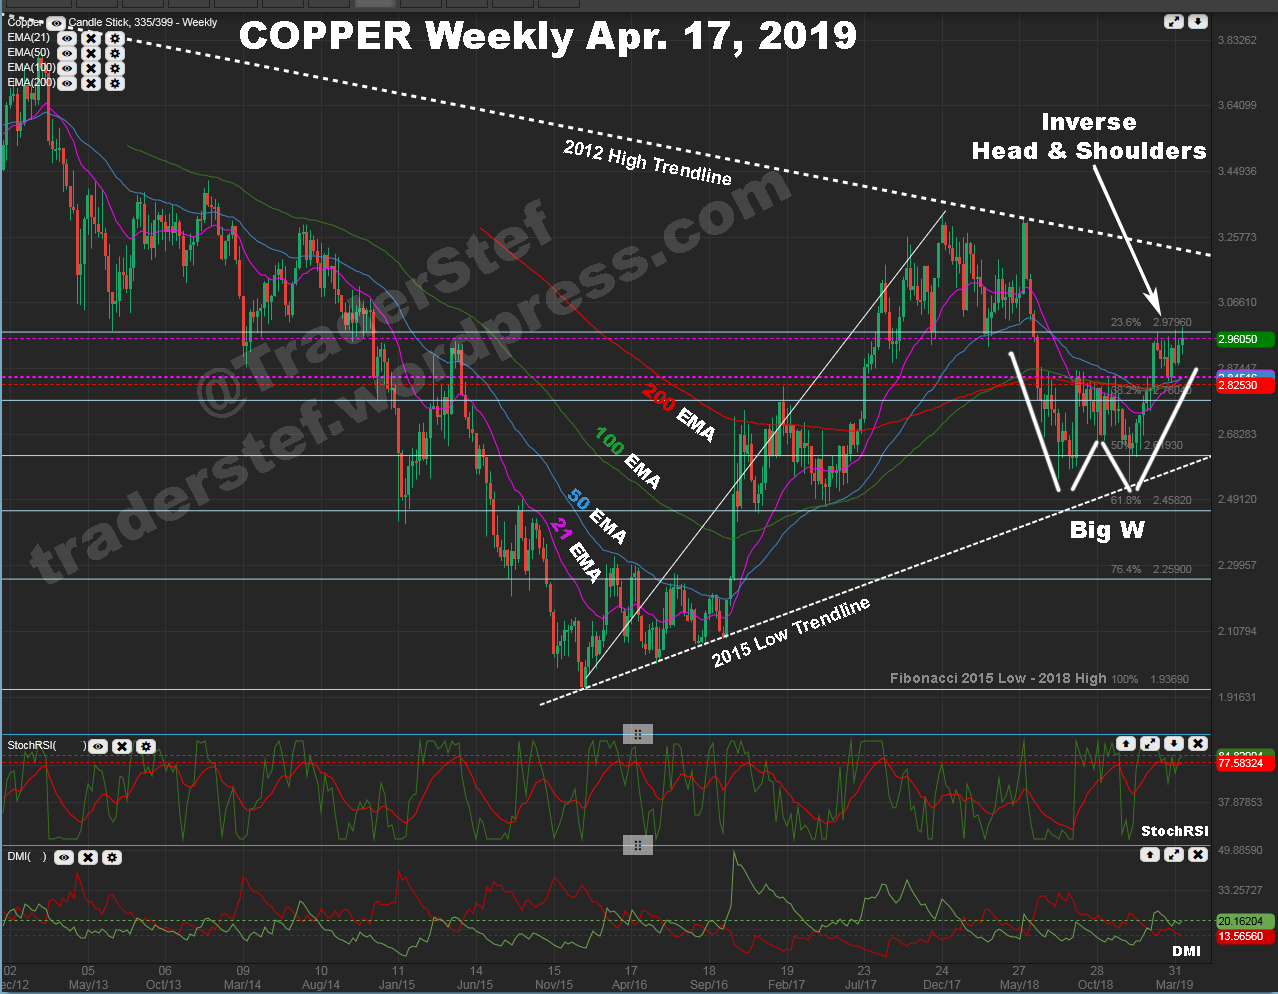 Copper Weekly Futures Chart April 17, 2019